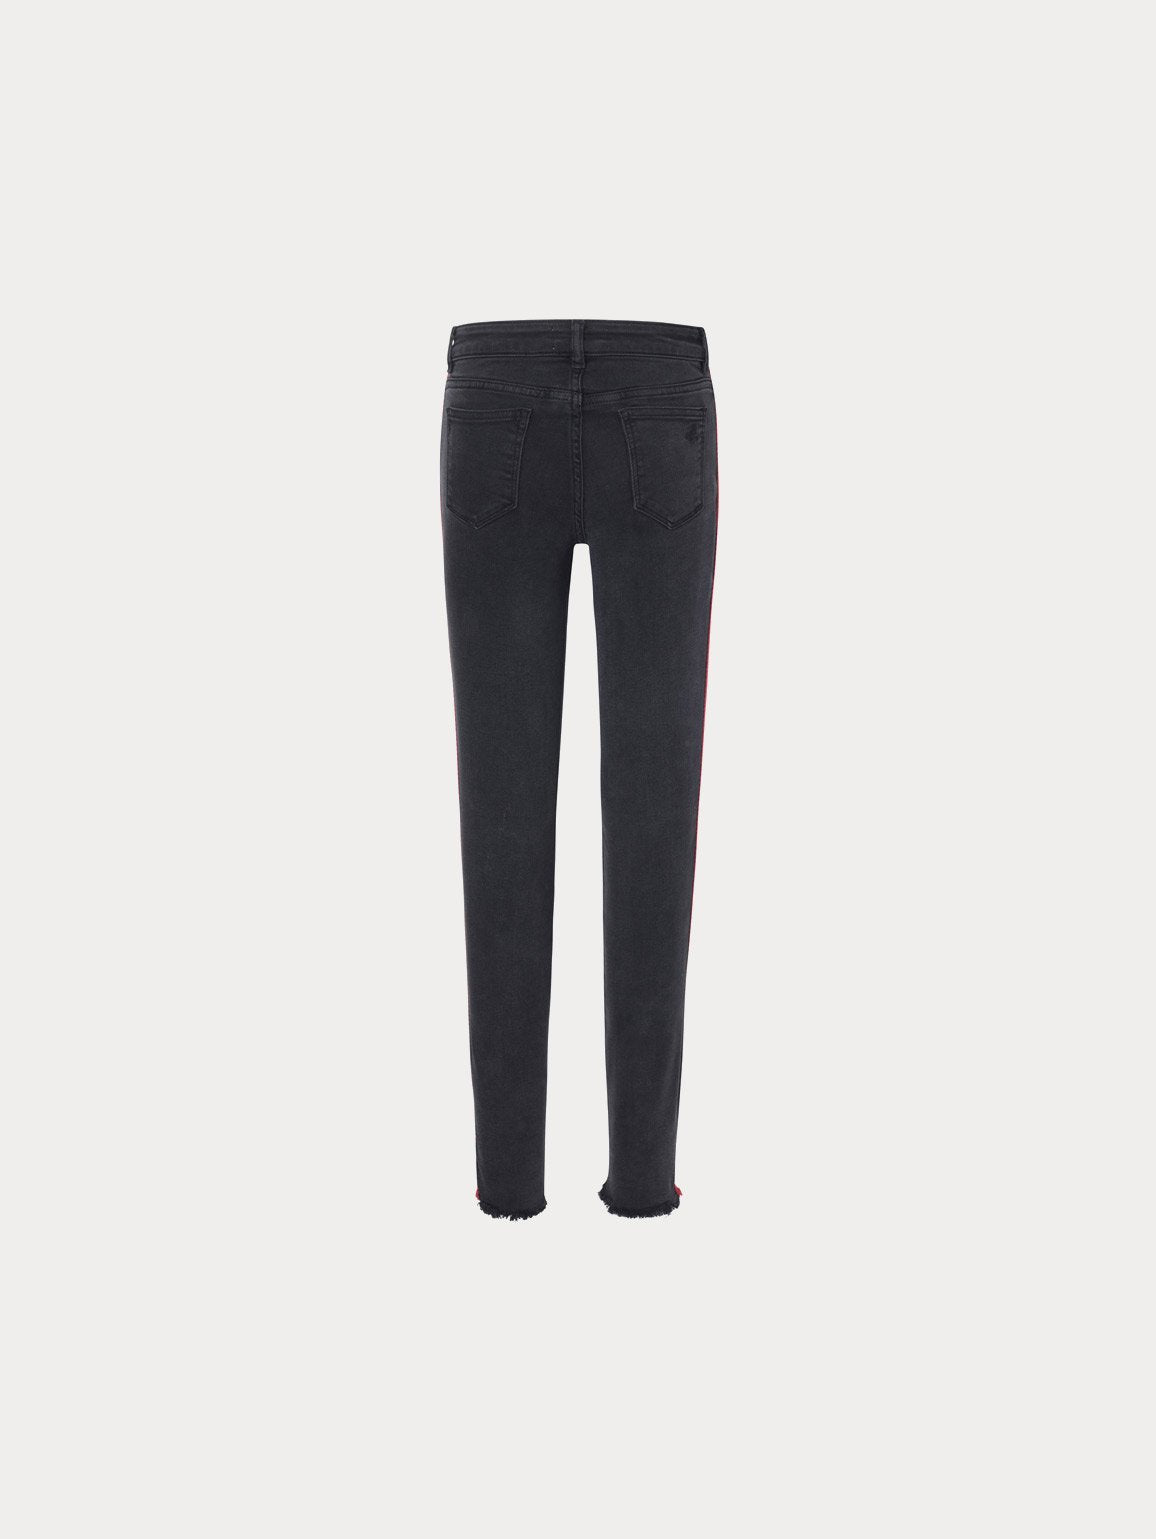 Chloe Toddler Skinny | Pop Black - DL1961